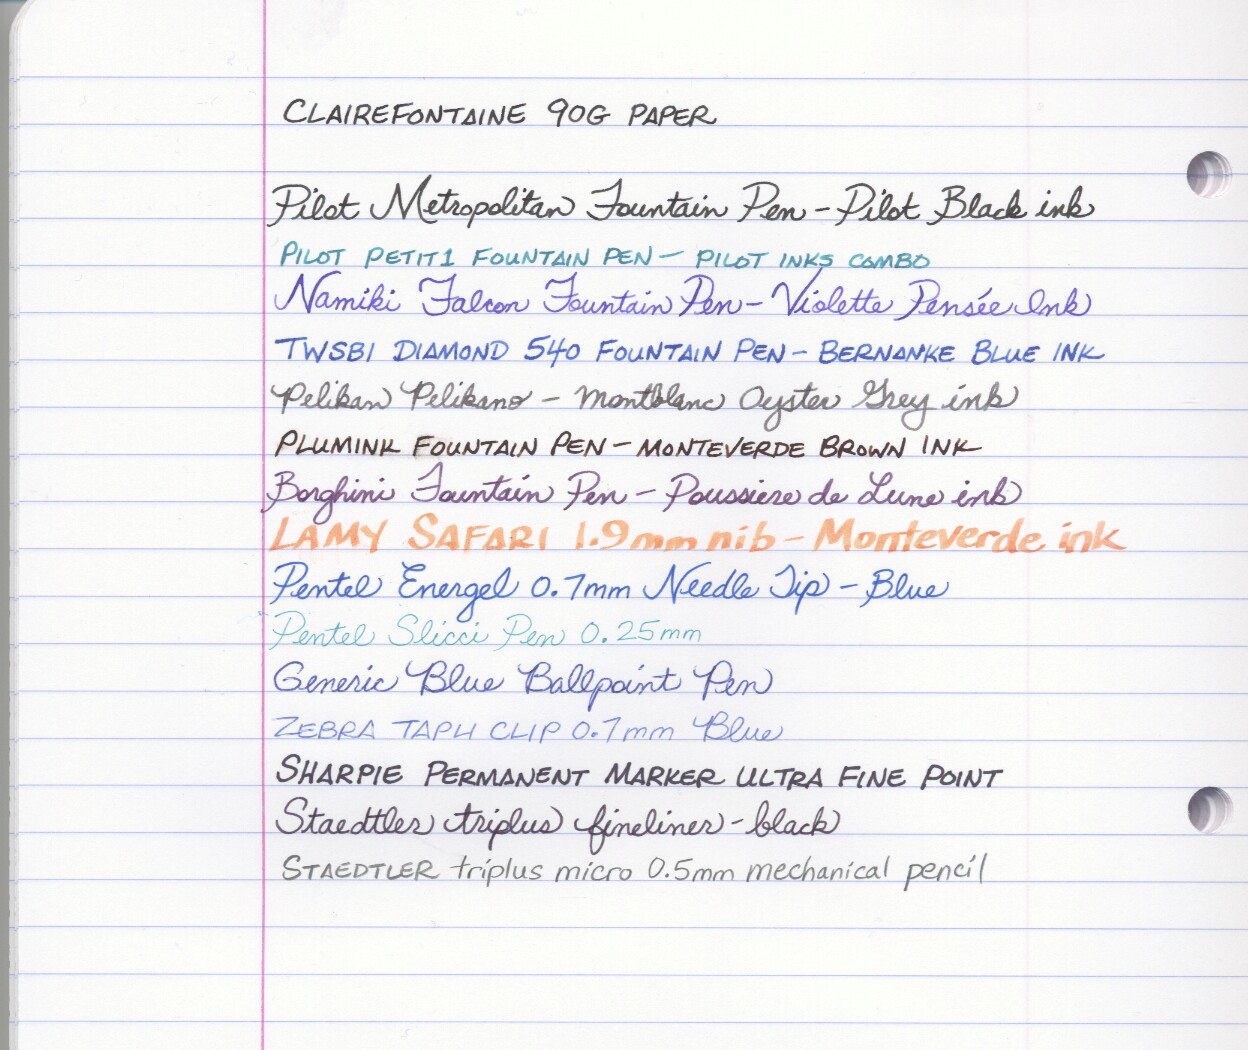 rhodia writer s bloc blog clairefontaine 90g paper writing test front